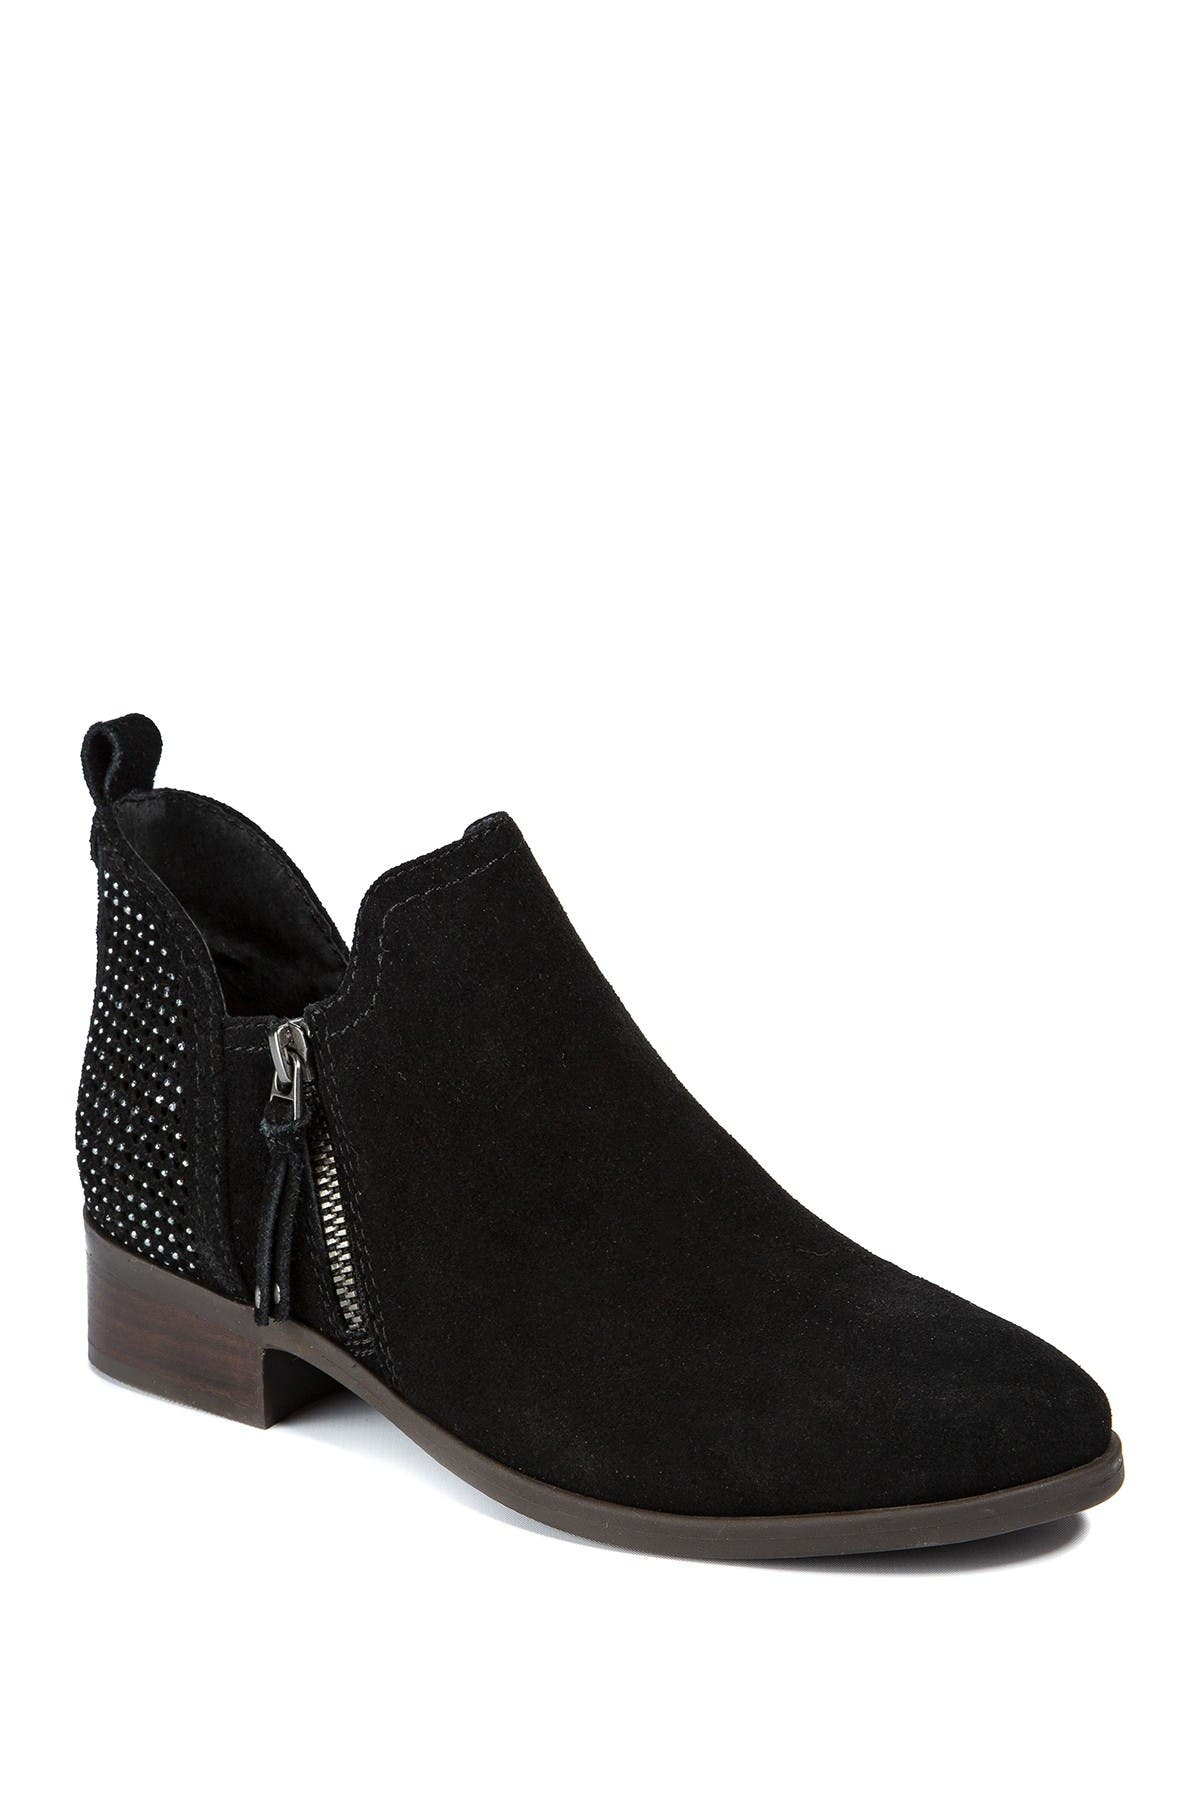 Image of LUCCA LANE Syanna Ankle Bootie